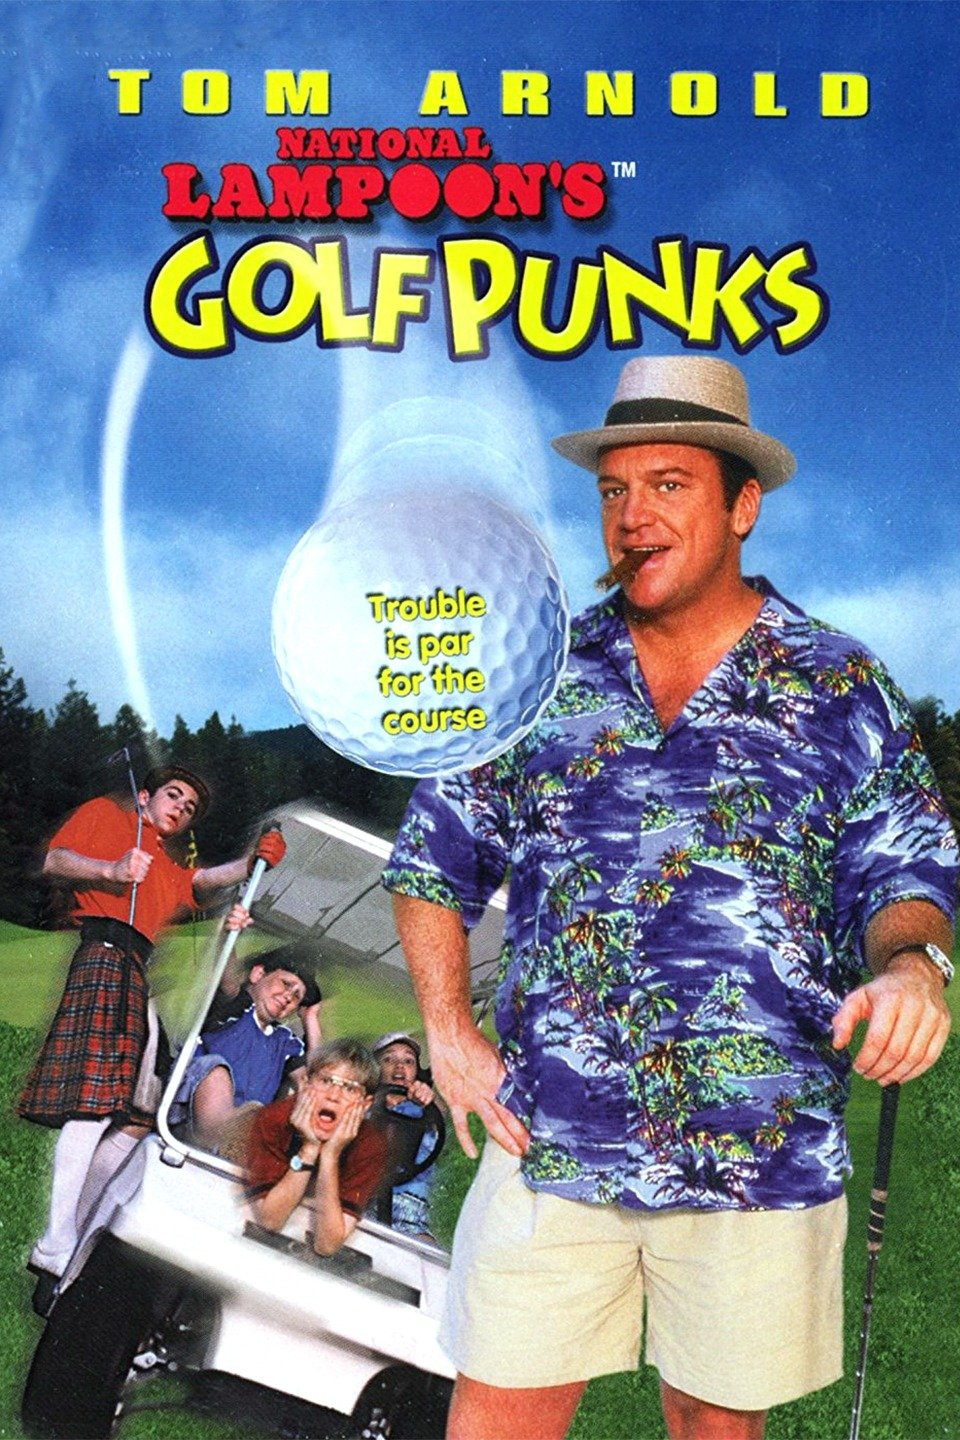 National Lampoon's Golf Punks wwwgstaticcomtvthumbmovieposters21303p21303